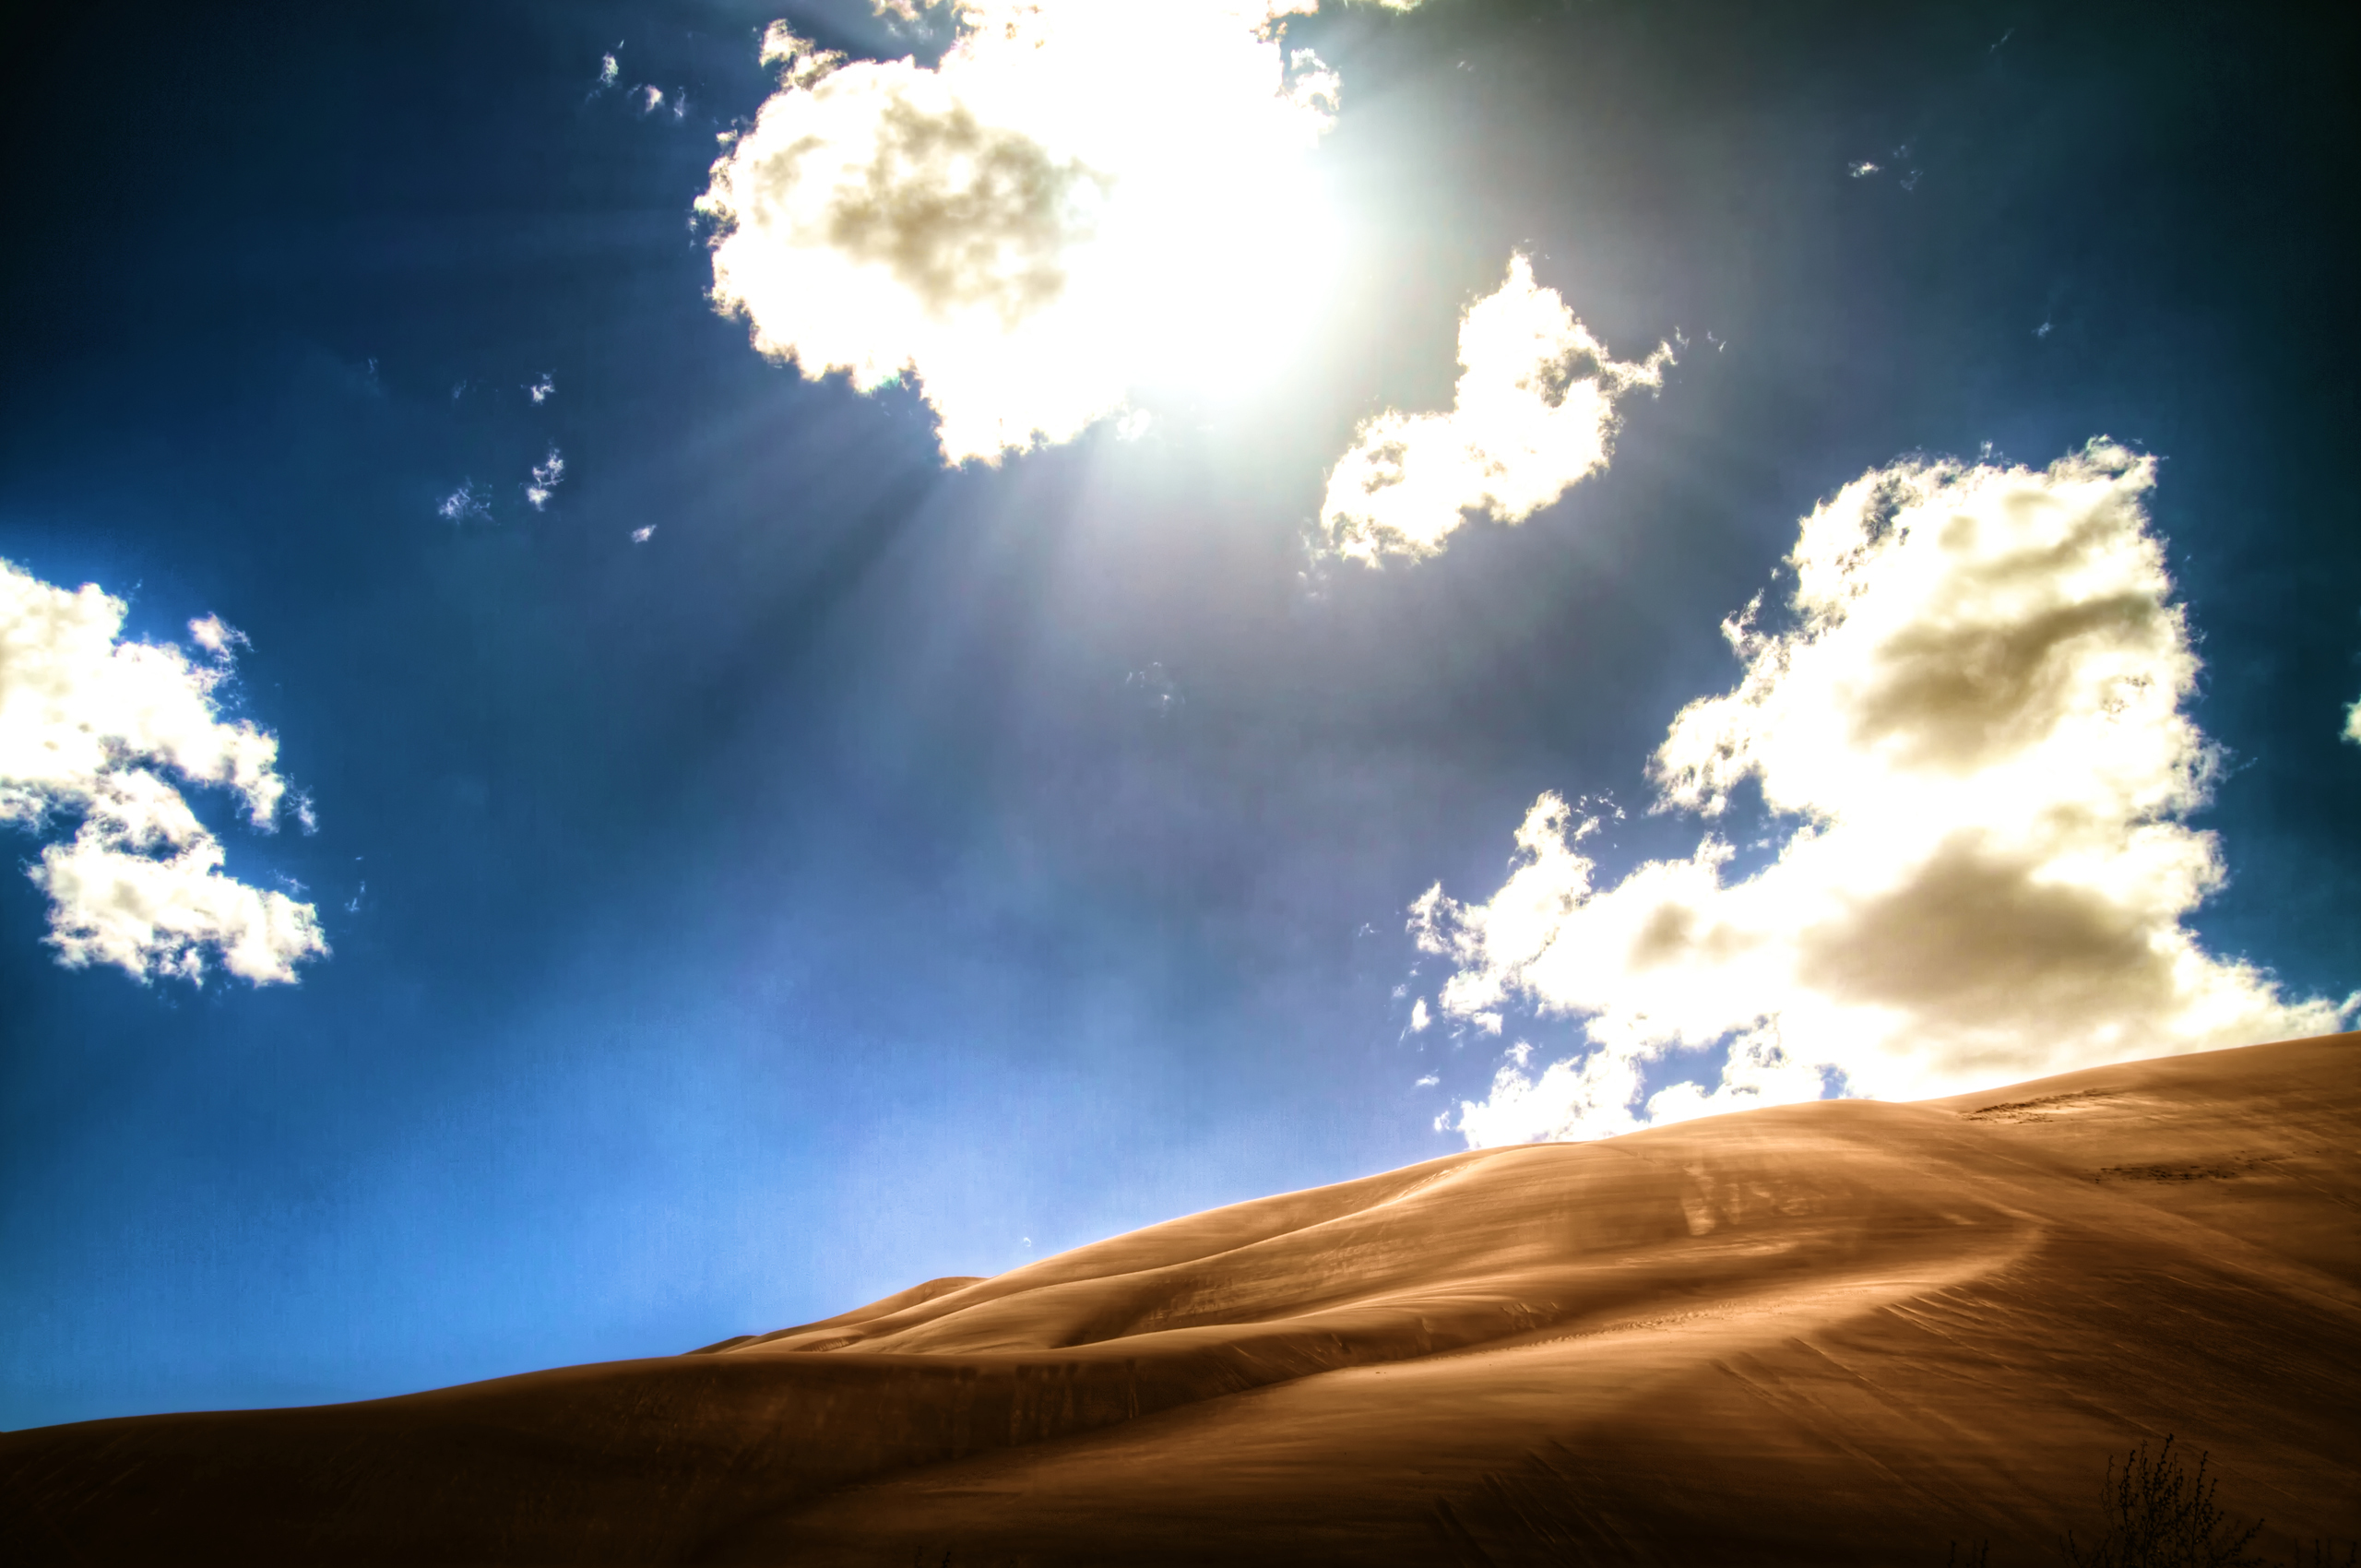 sky-clouds-light-desert-dunes-dunes-sand